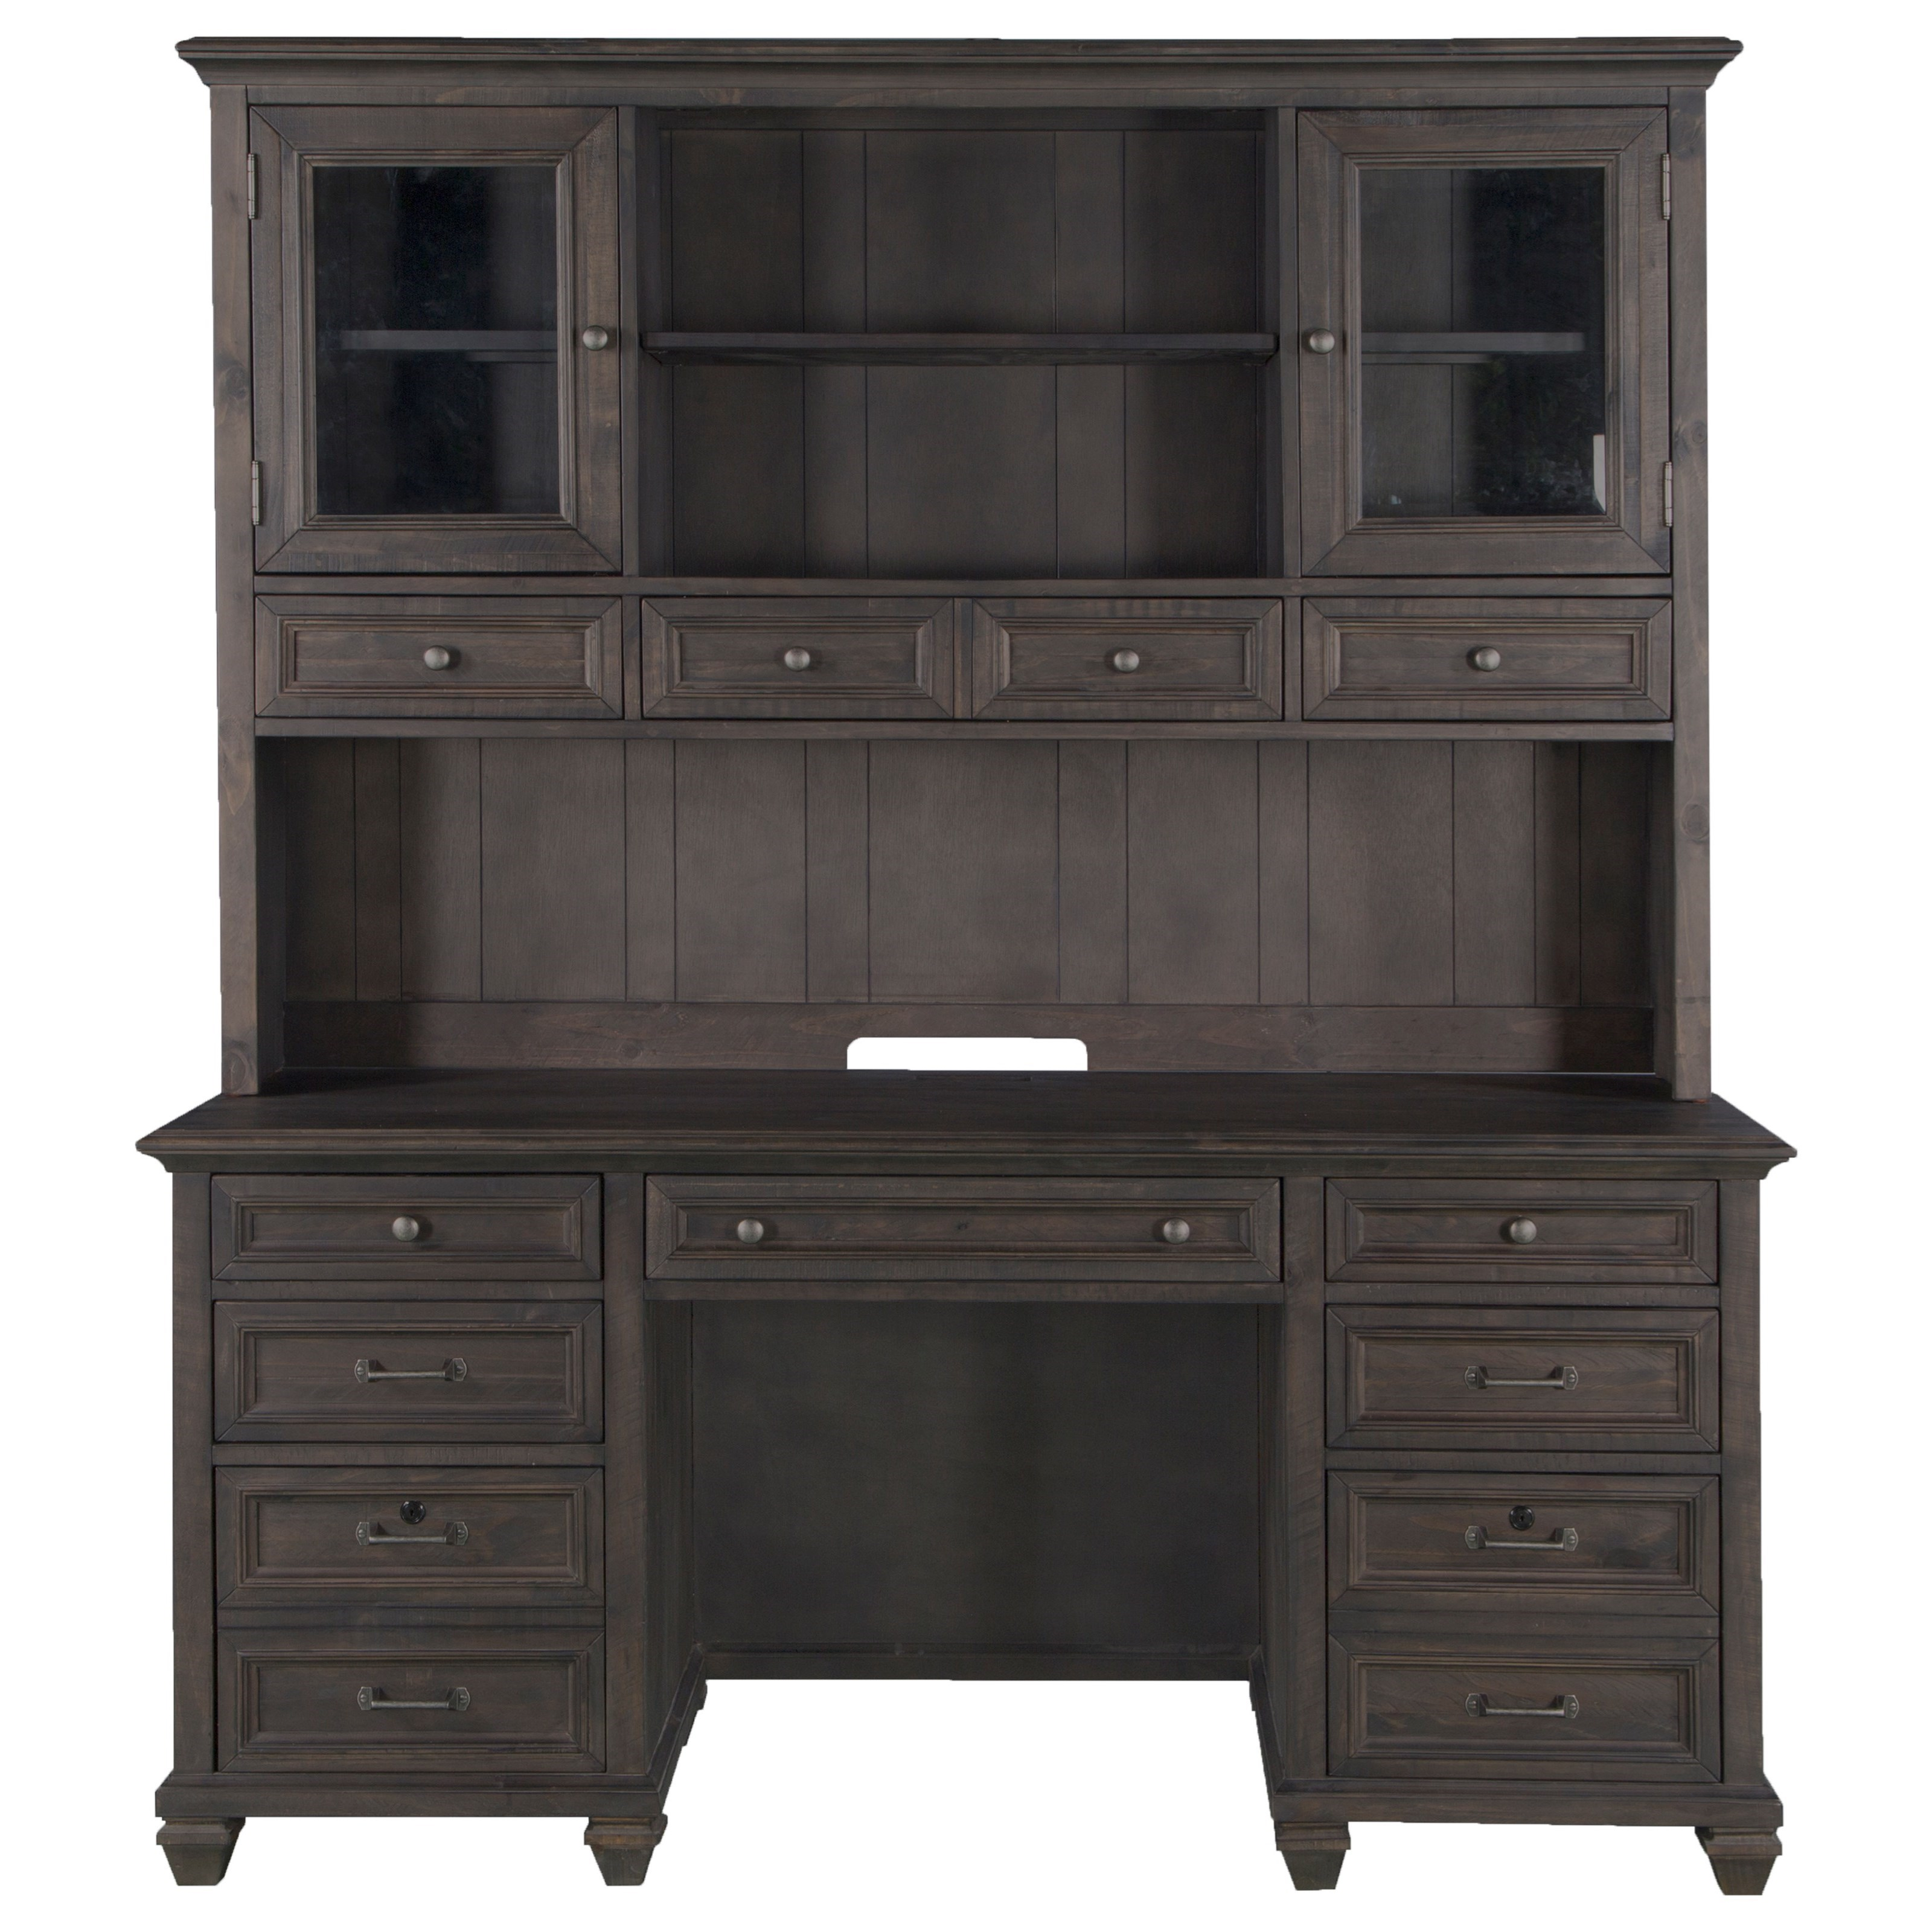 Sutton Place Hutch by Magnussen Home at Baer's Furniture